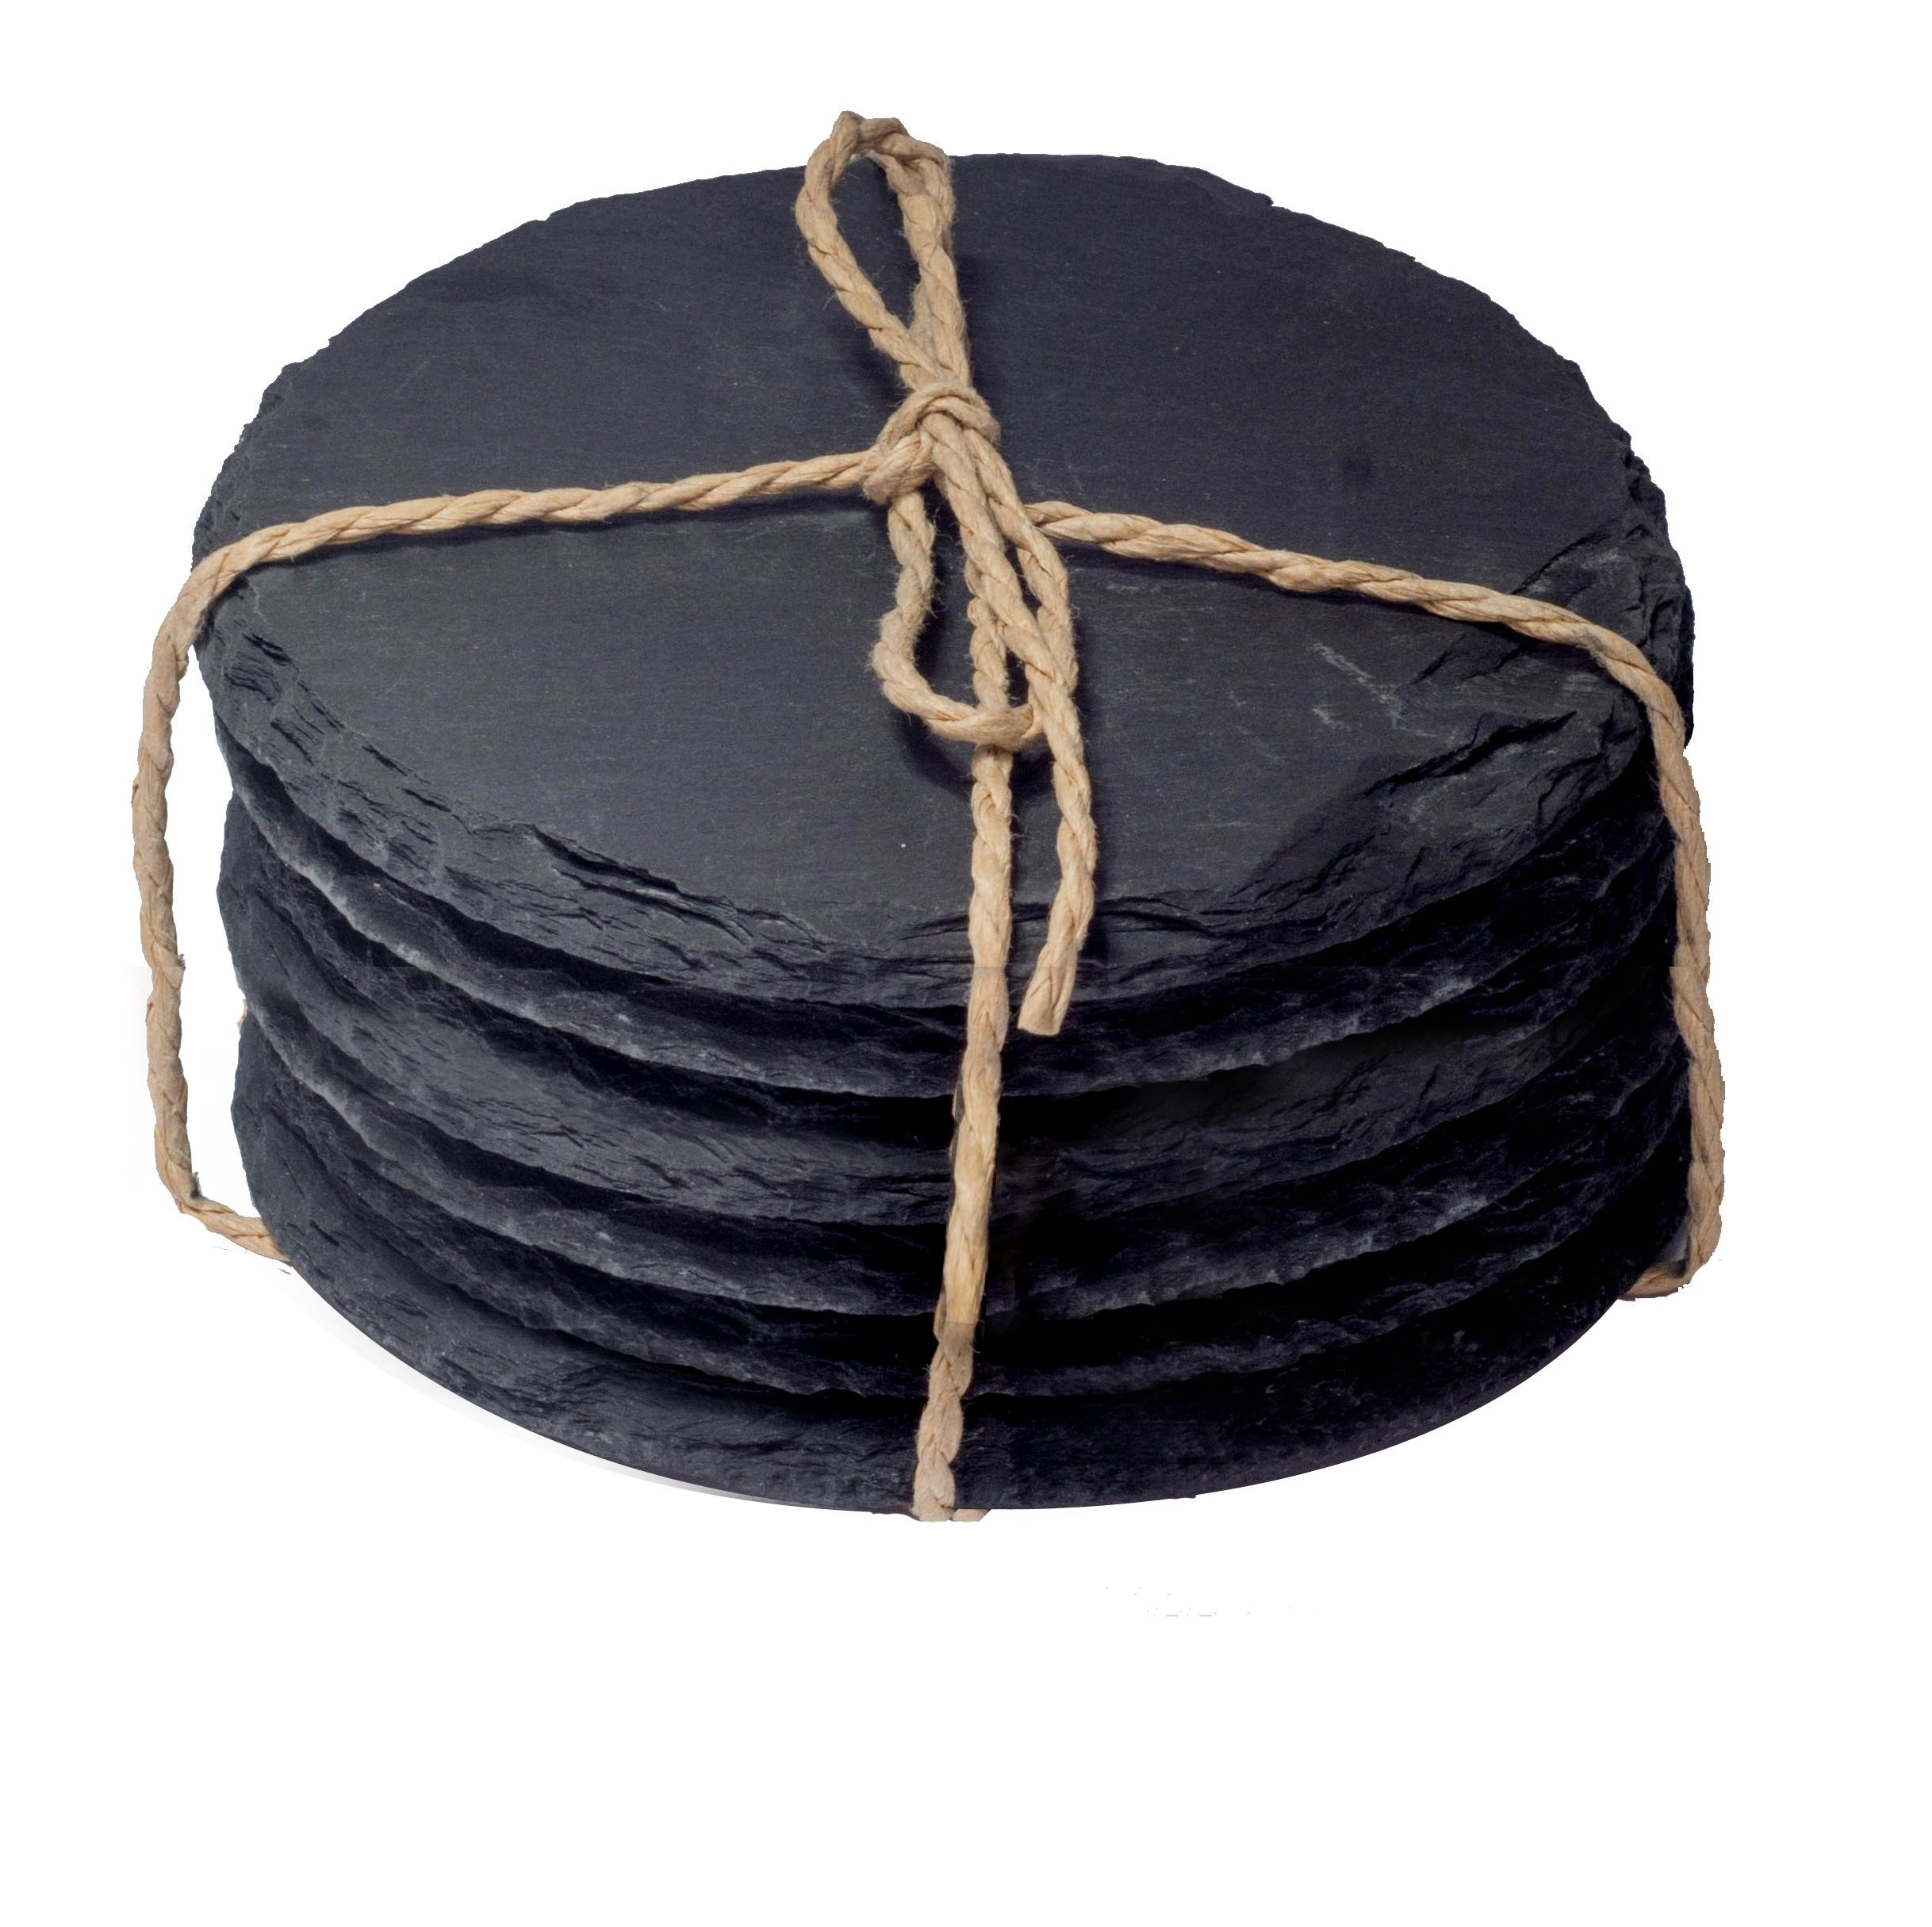 CraftsOfEgypt Slate Coasters - Set of 6 A slate coasters with 4.0 Inches (10 cm) in Diameter Protection from Drink Rings